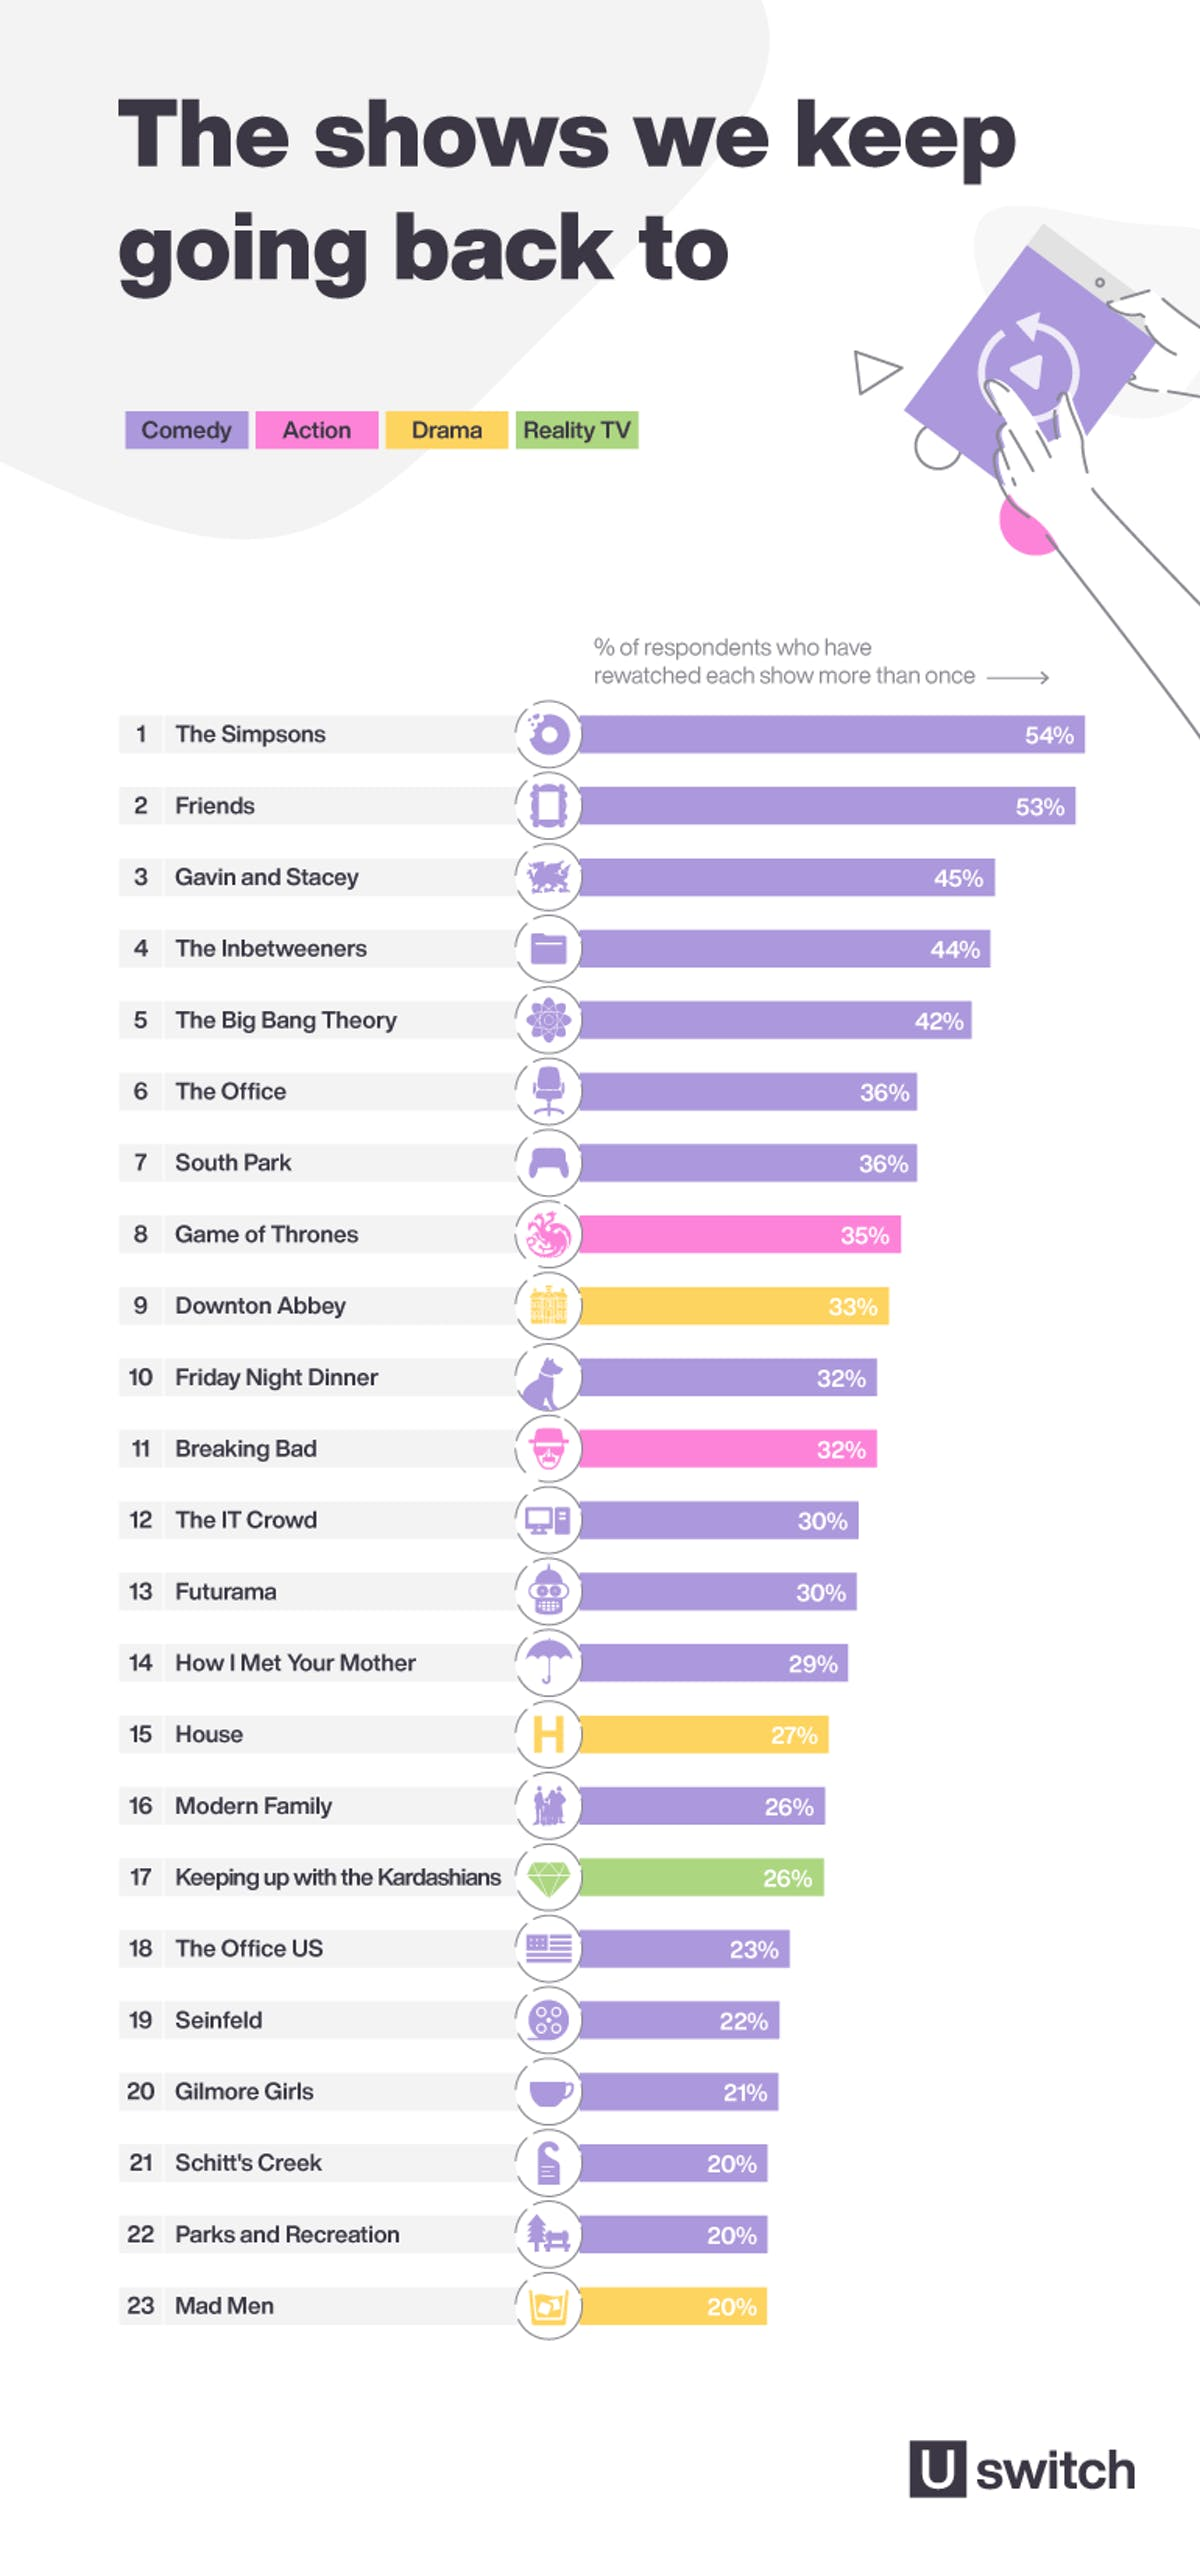 Infographic showing the shows we keep going back to